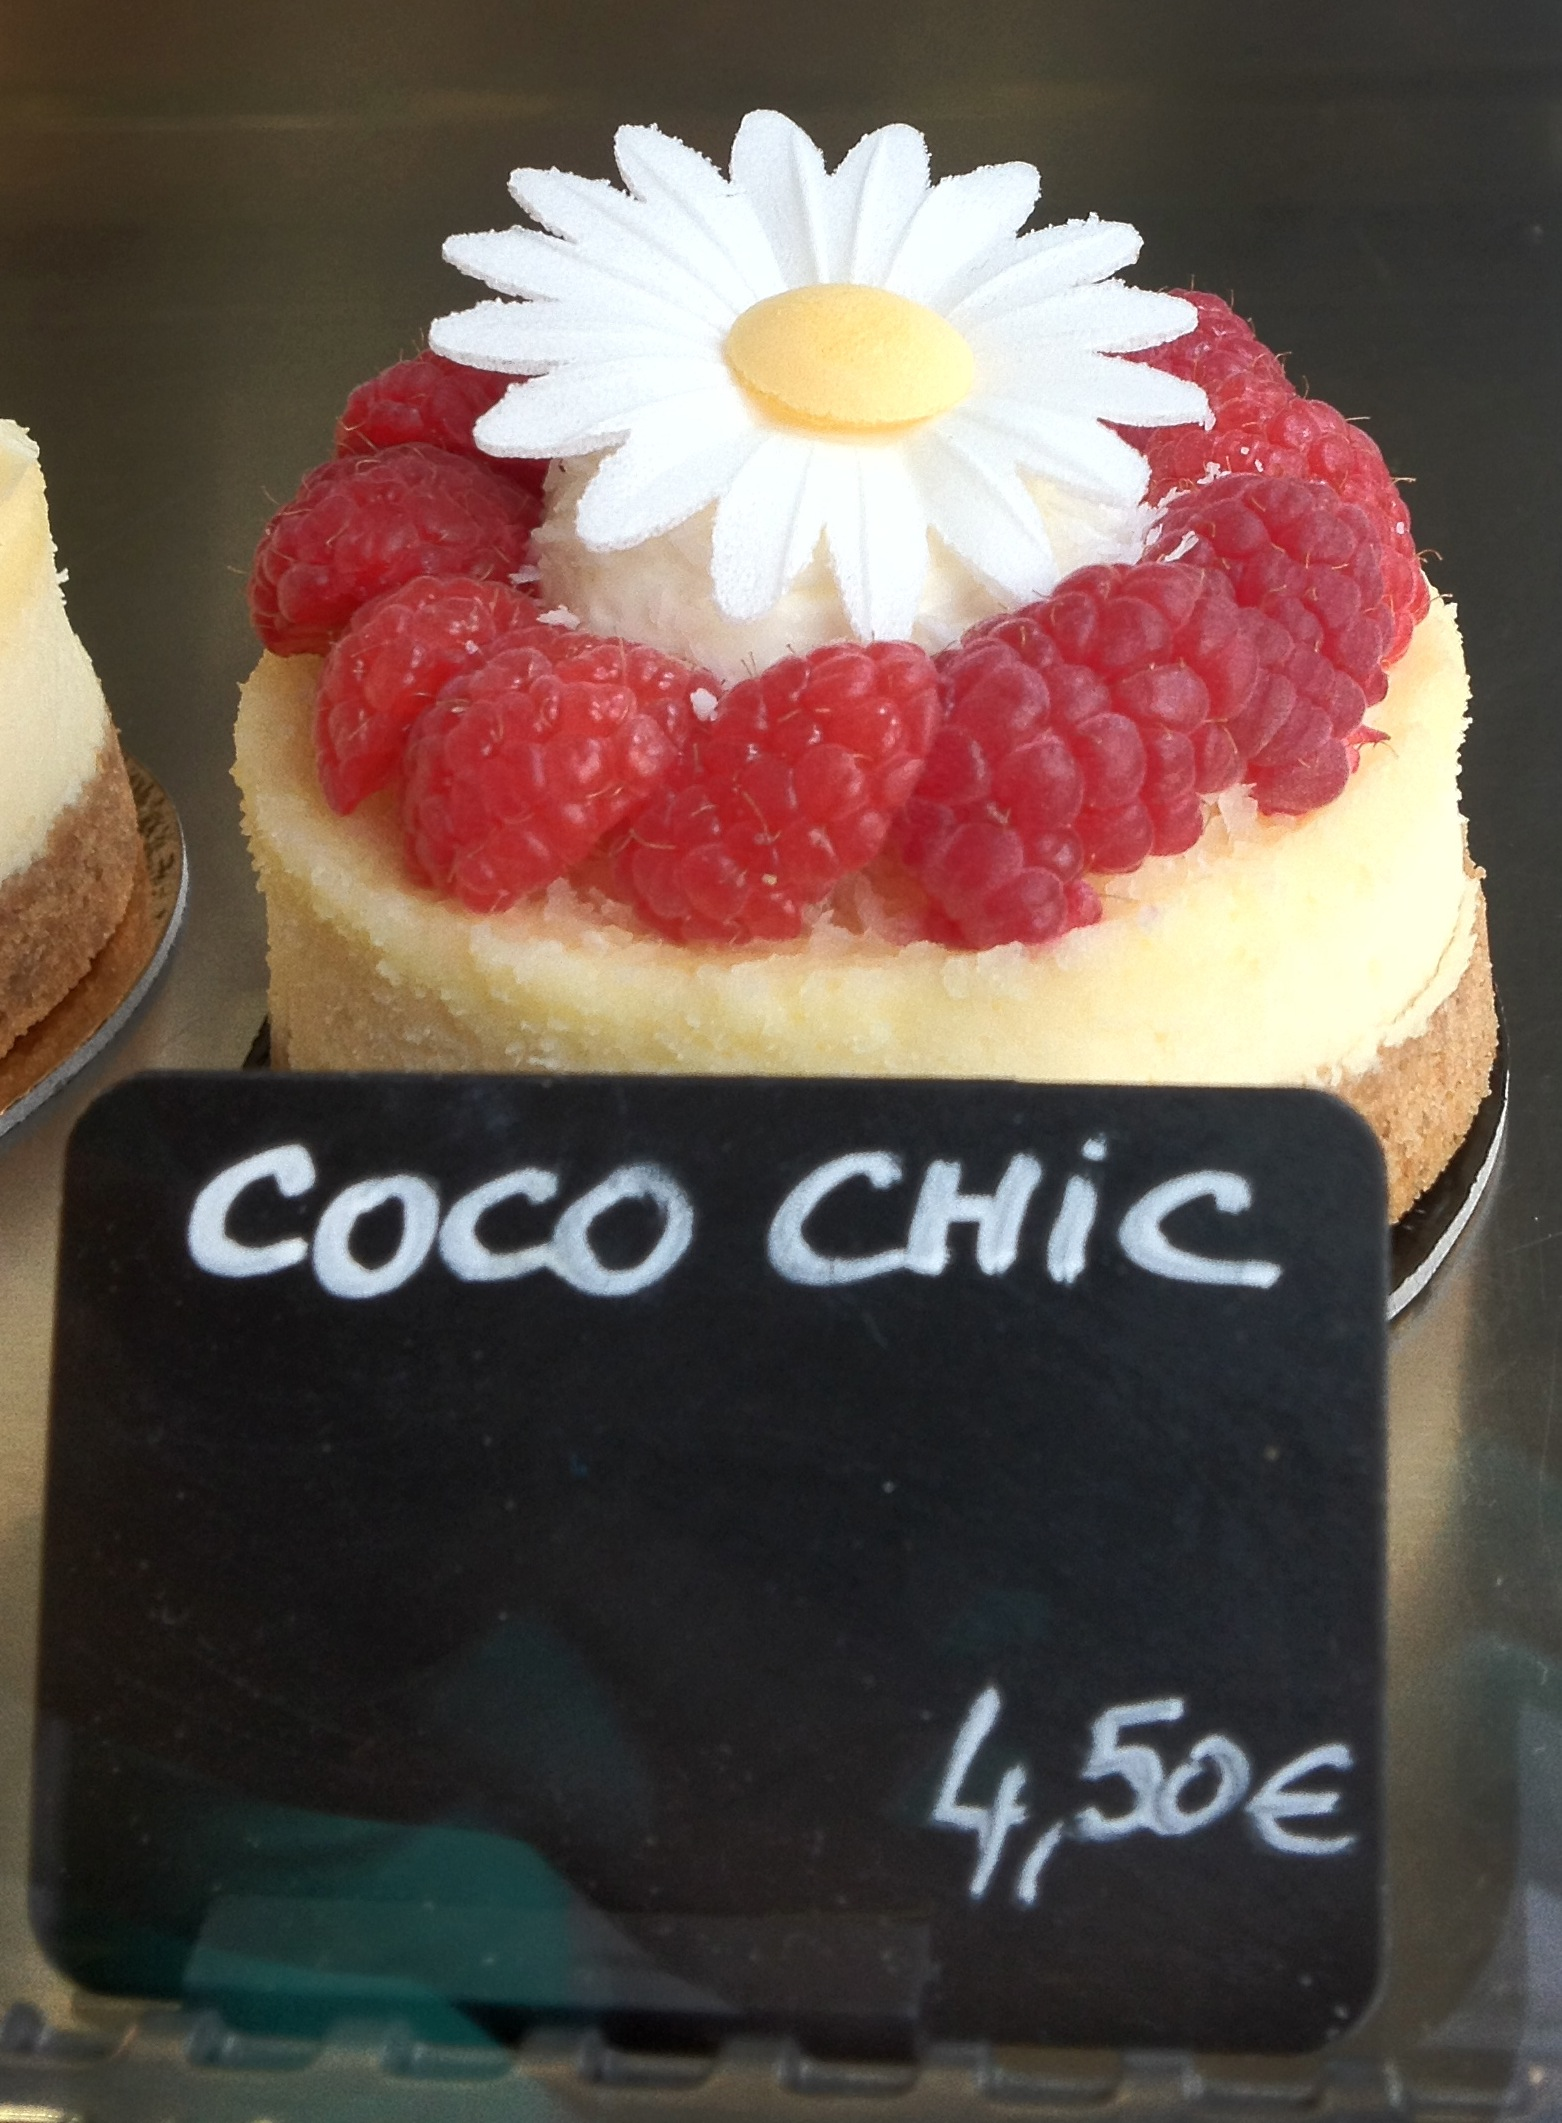 Best Cheesecake in Paris : She's cake by Sephora